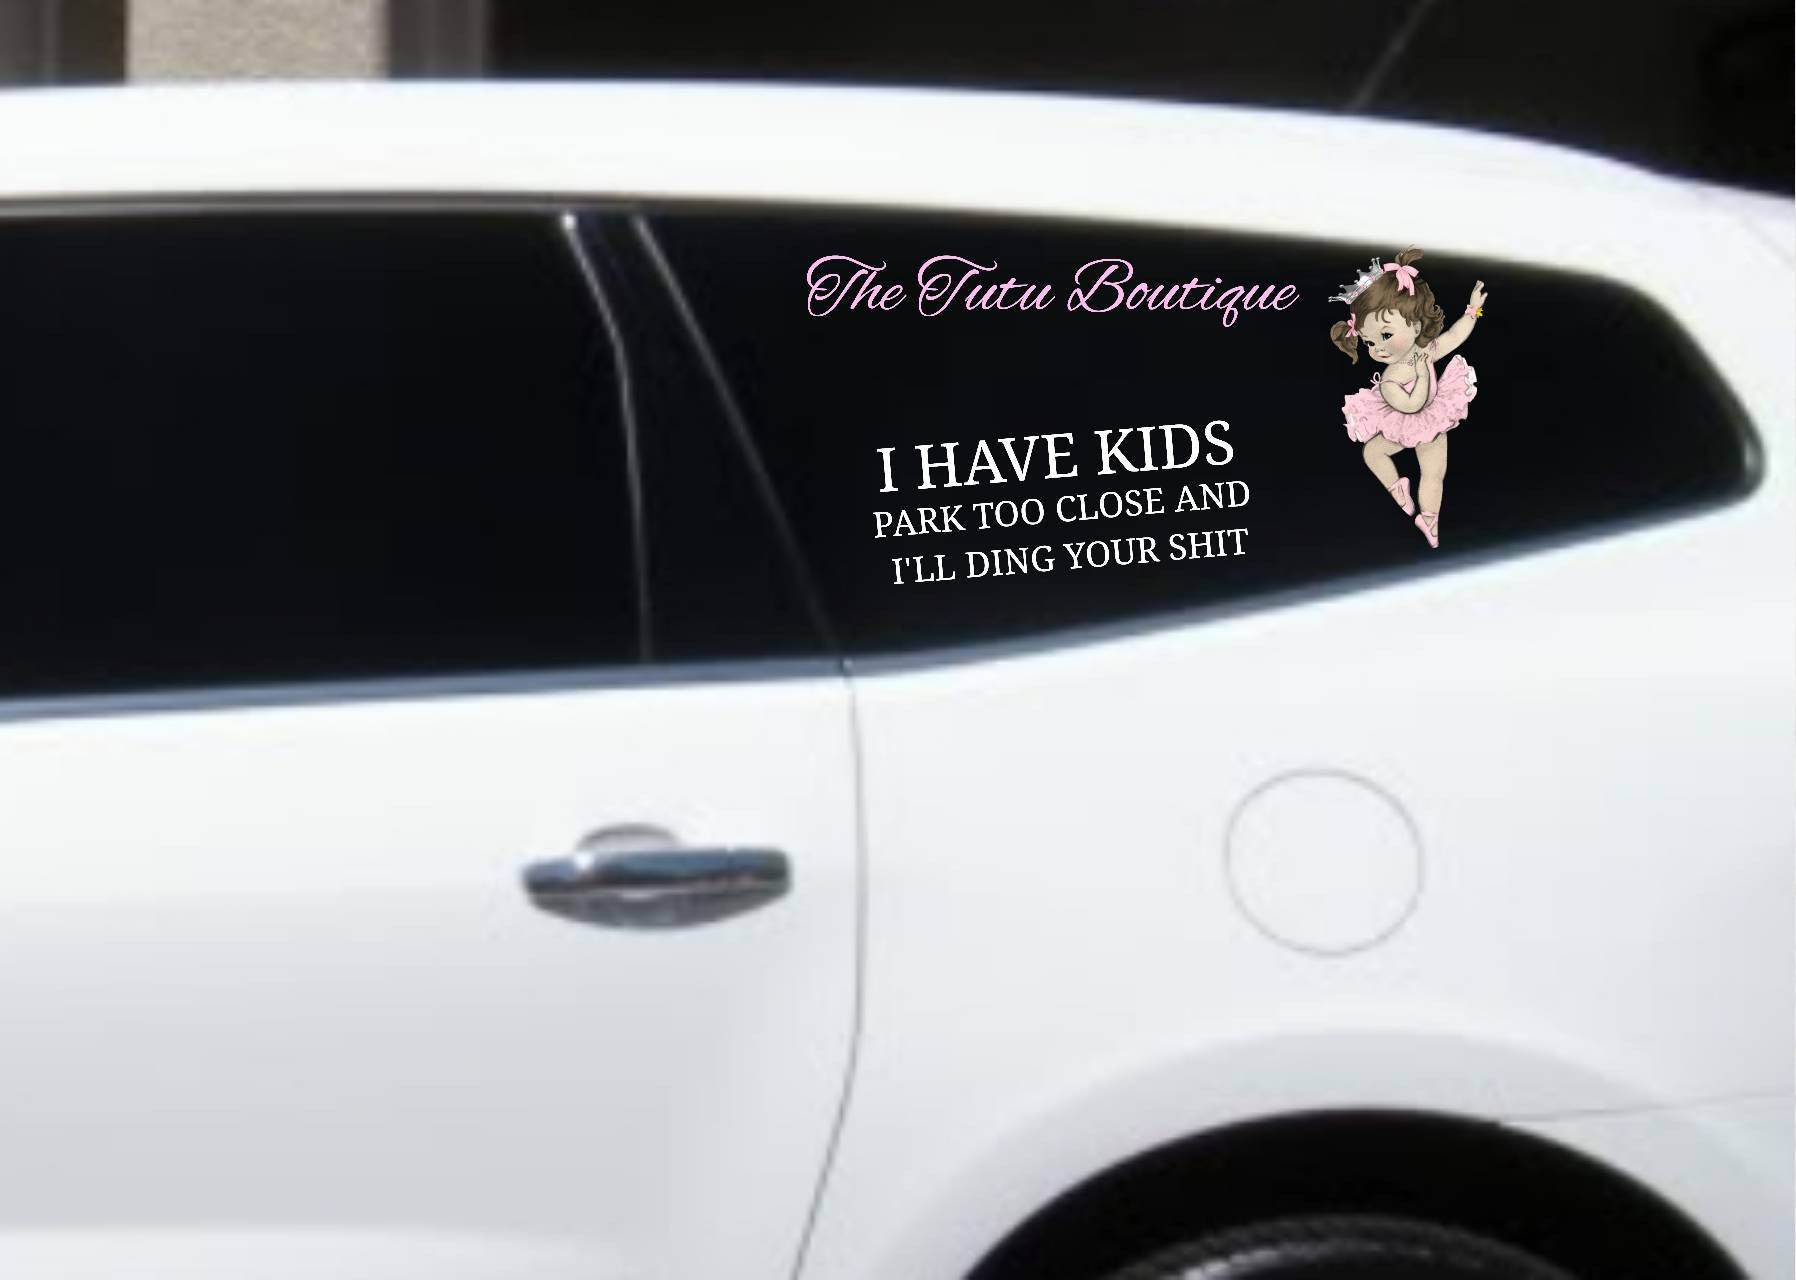 I have kids park too close and ill ding your shit decal window